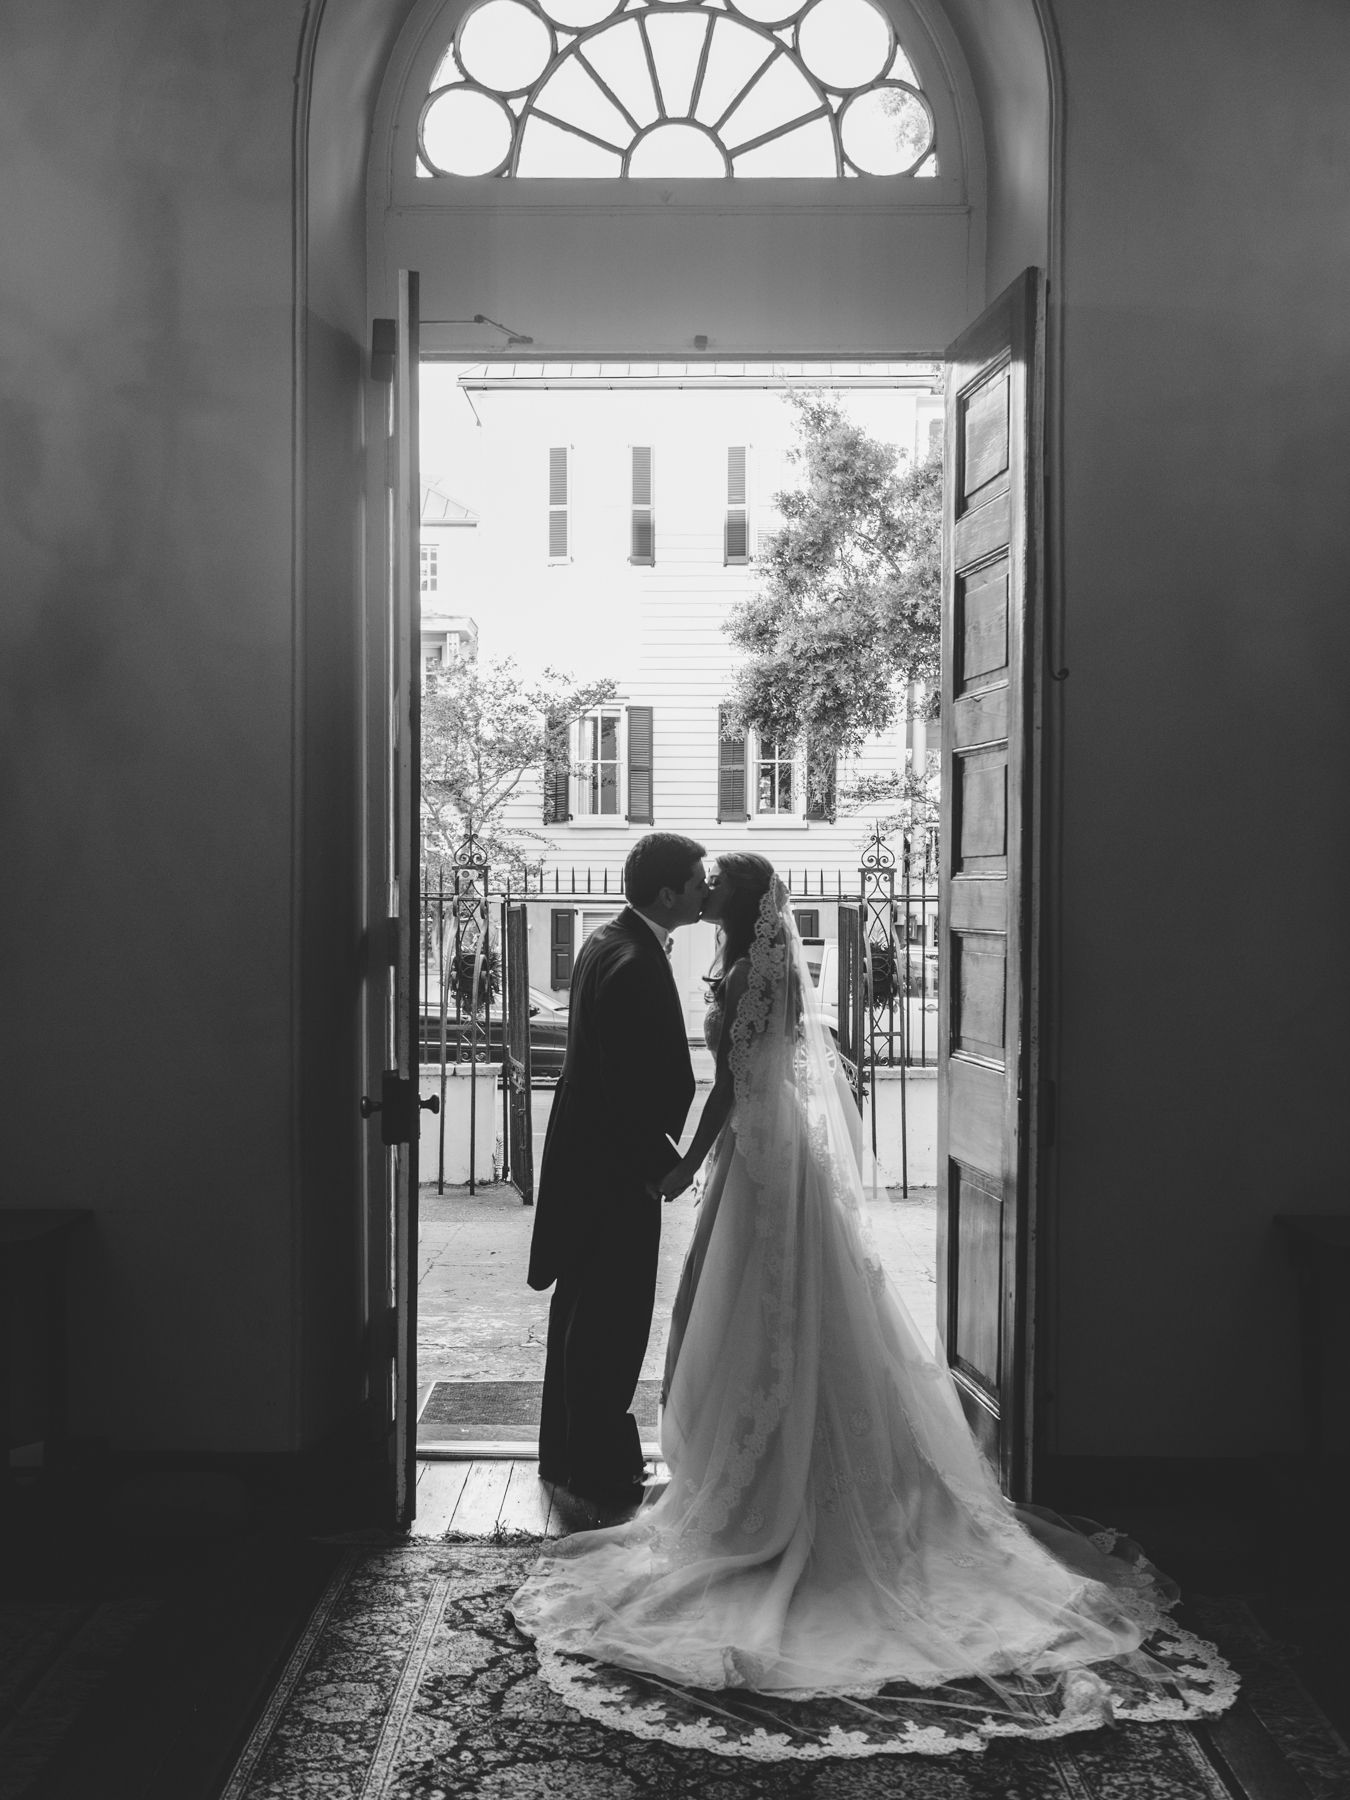 Bride And Groom Just Married First Kiss First Baptist Church Charleston Sc Wedding Shots Destination Wedding Photographer Wedding Photographers